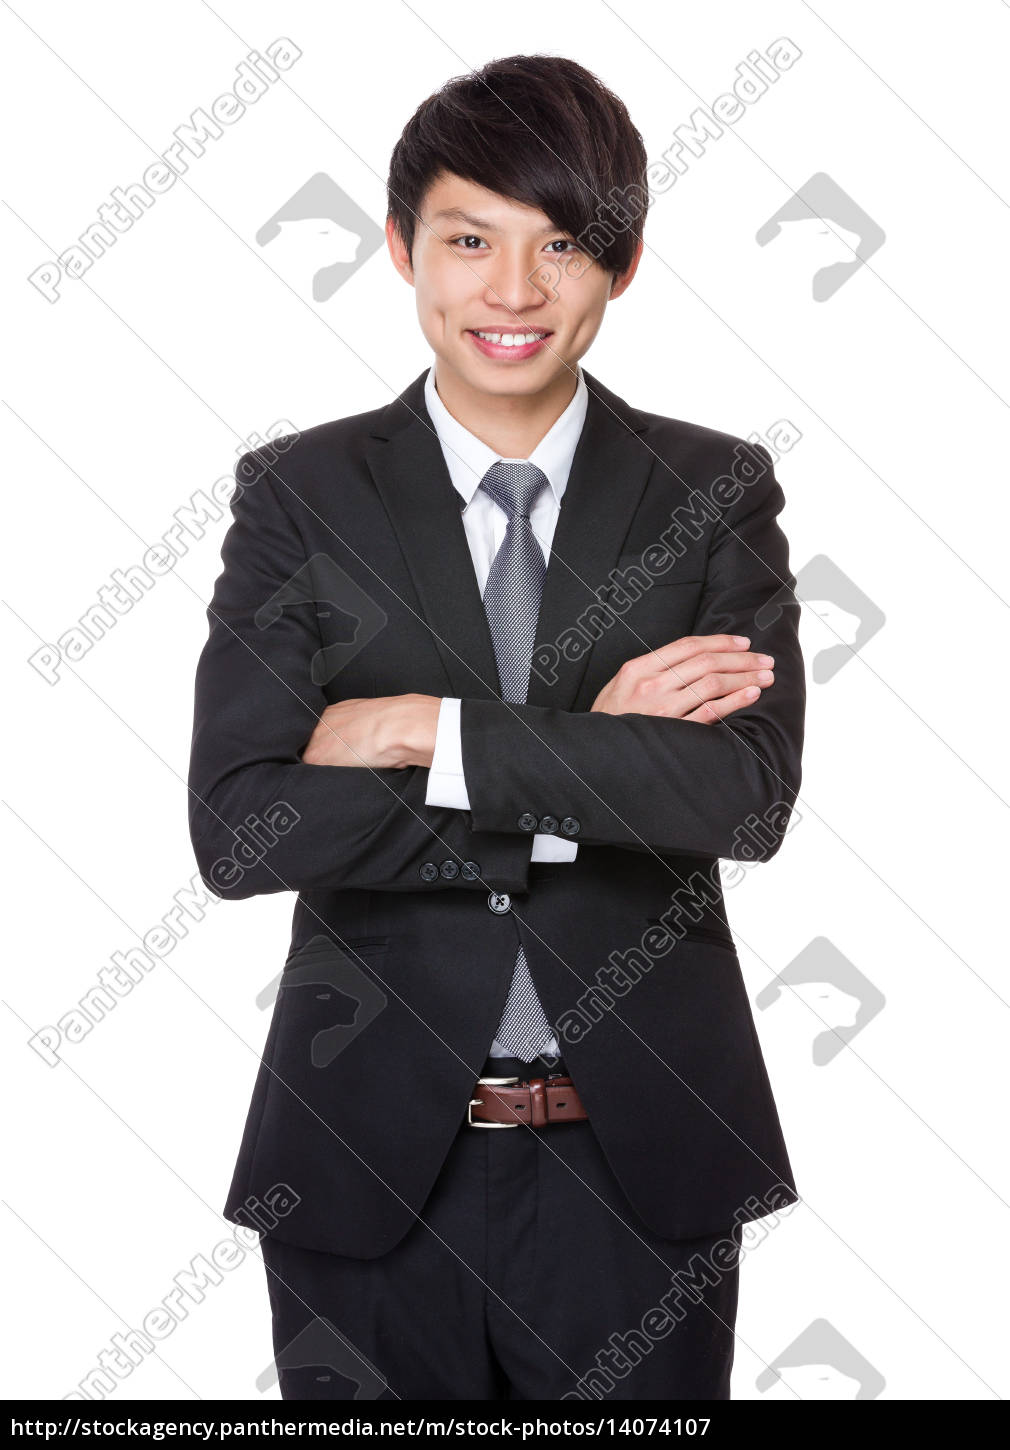 businessman, portrait - 14074107